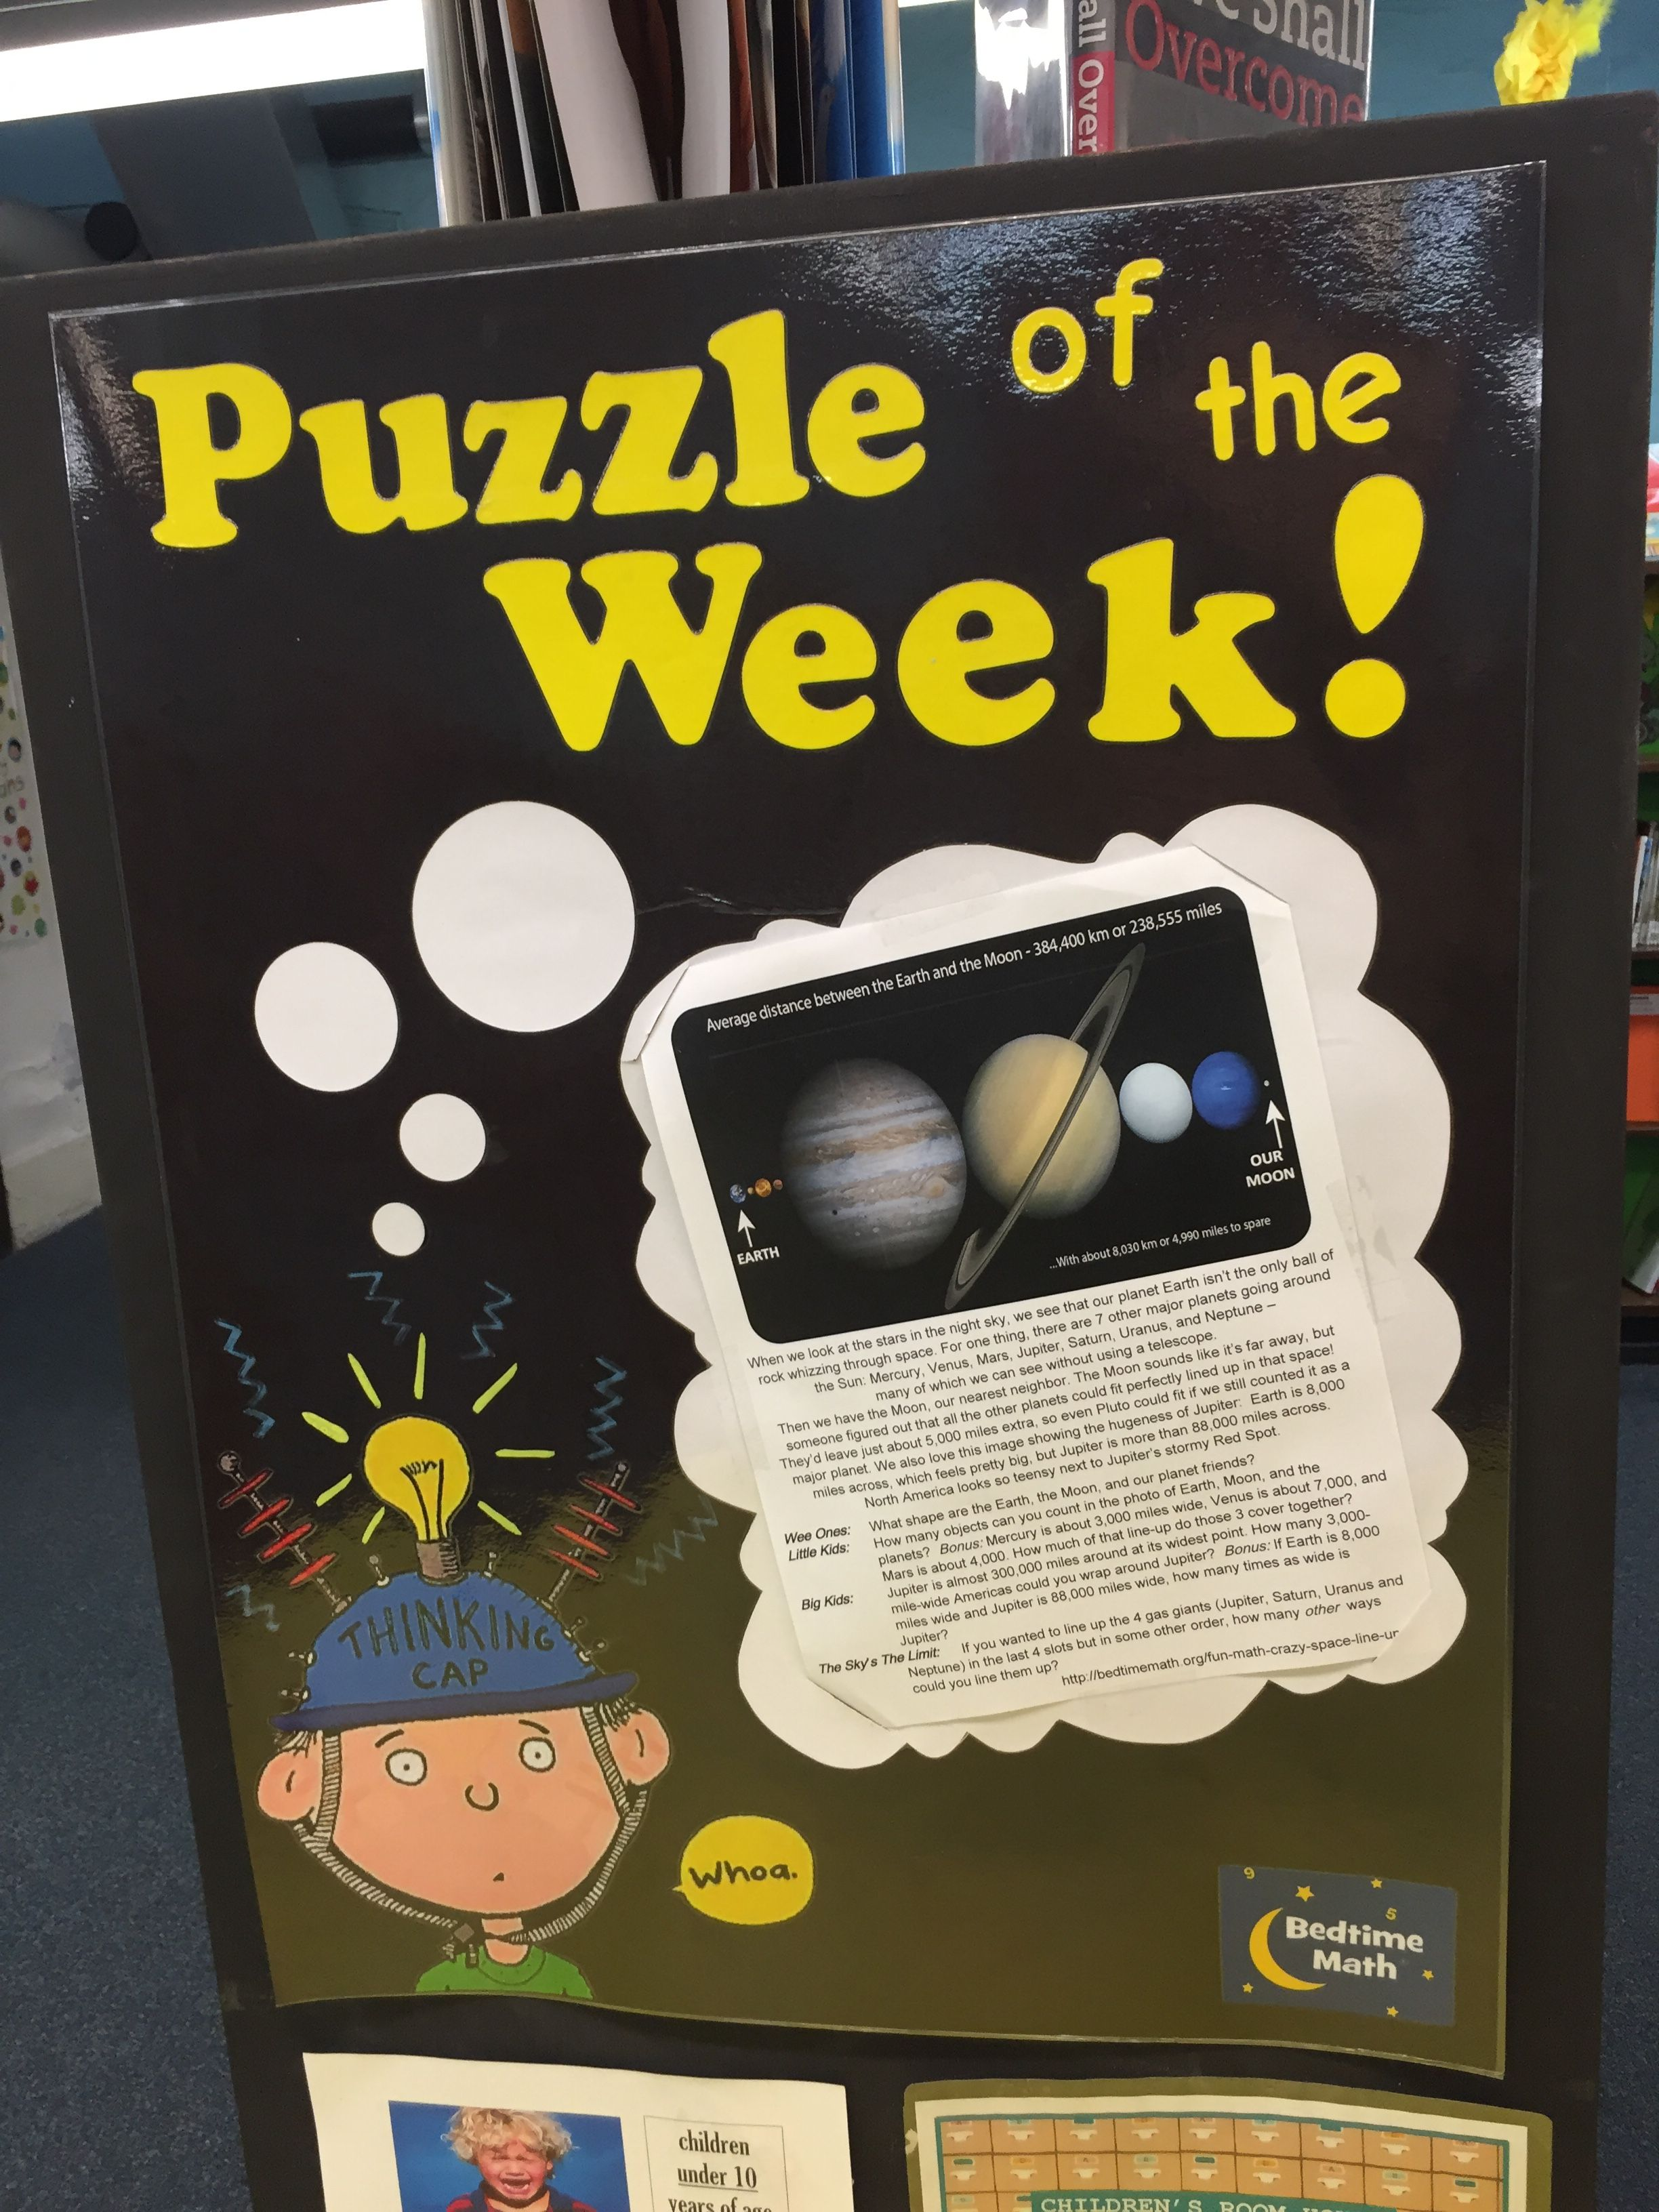 Check out the puzzle of the week!